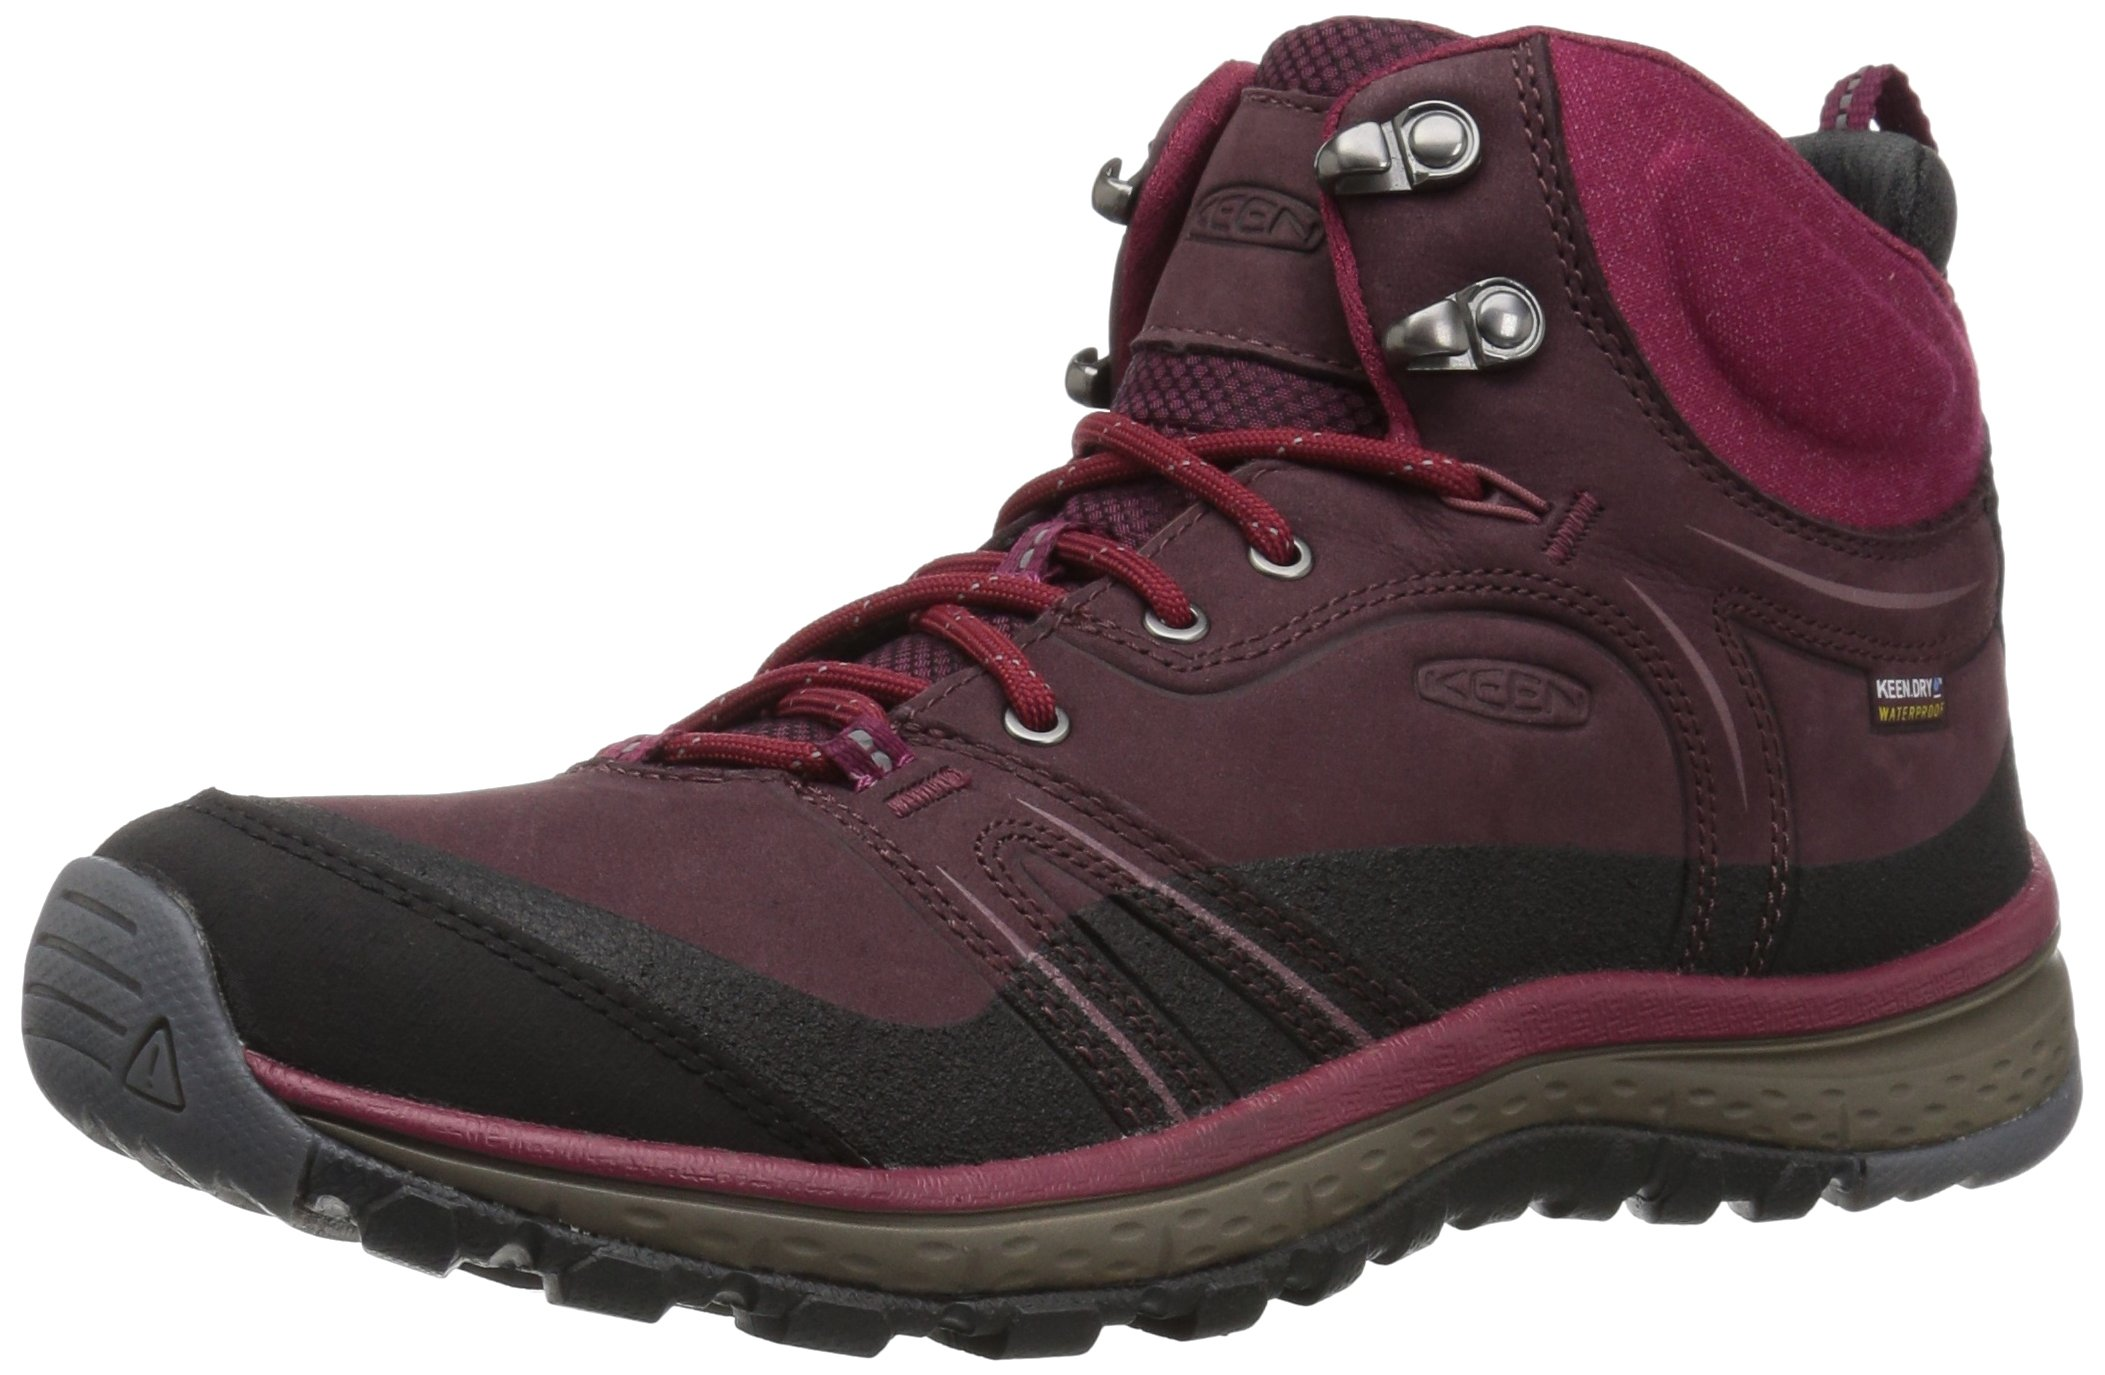 KEEN Women's Terradora Leather Mid Wp-w Hiking Shoe, Wine/Rododendron, 7 M US